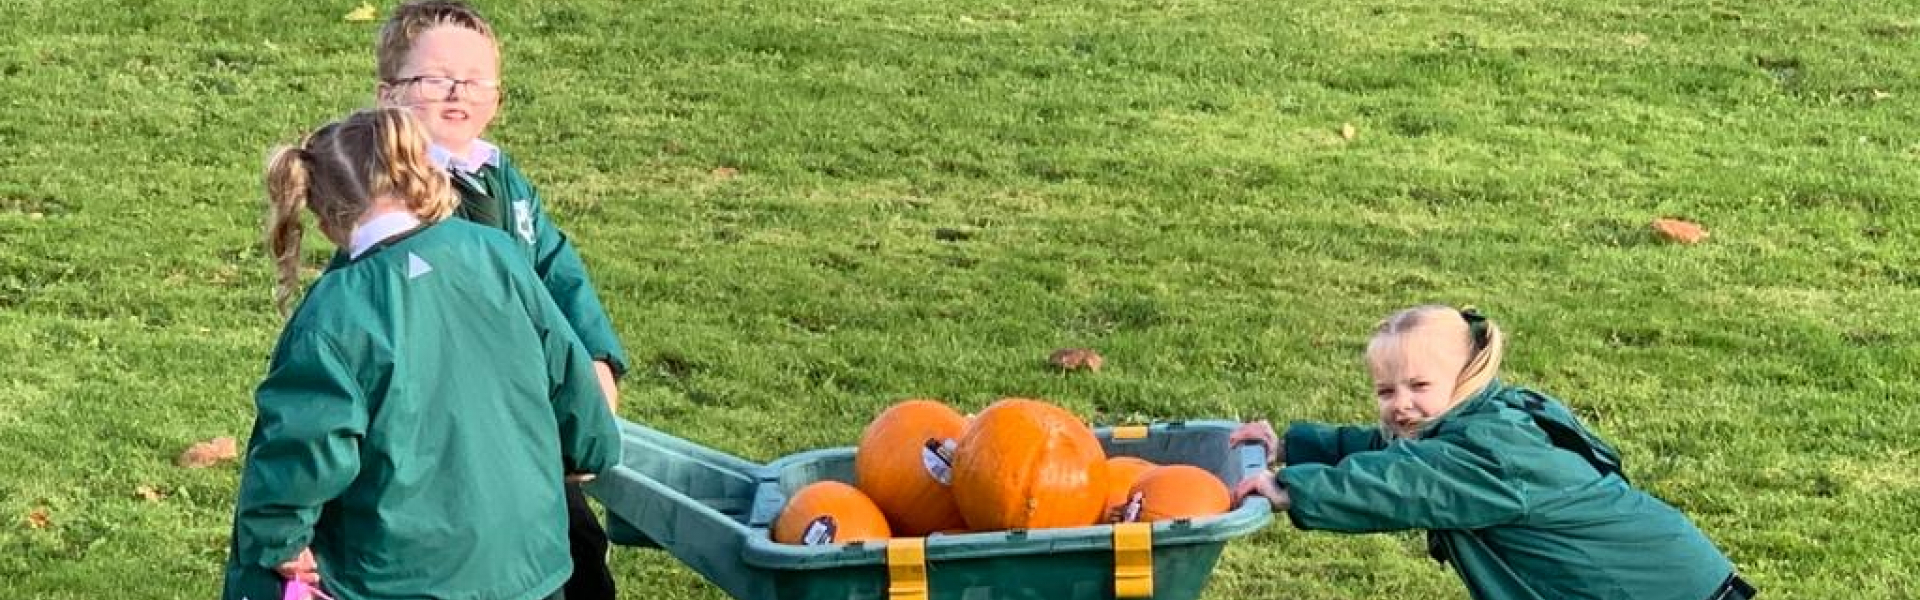 Pumpkin picking.jpg